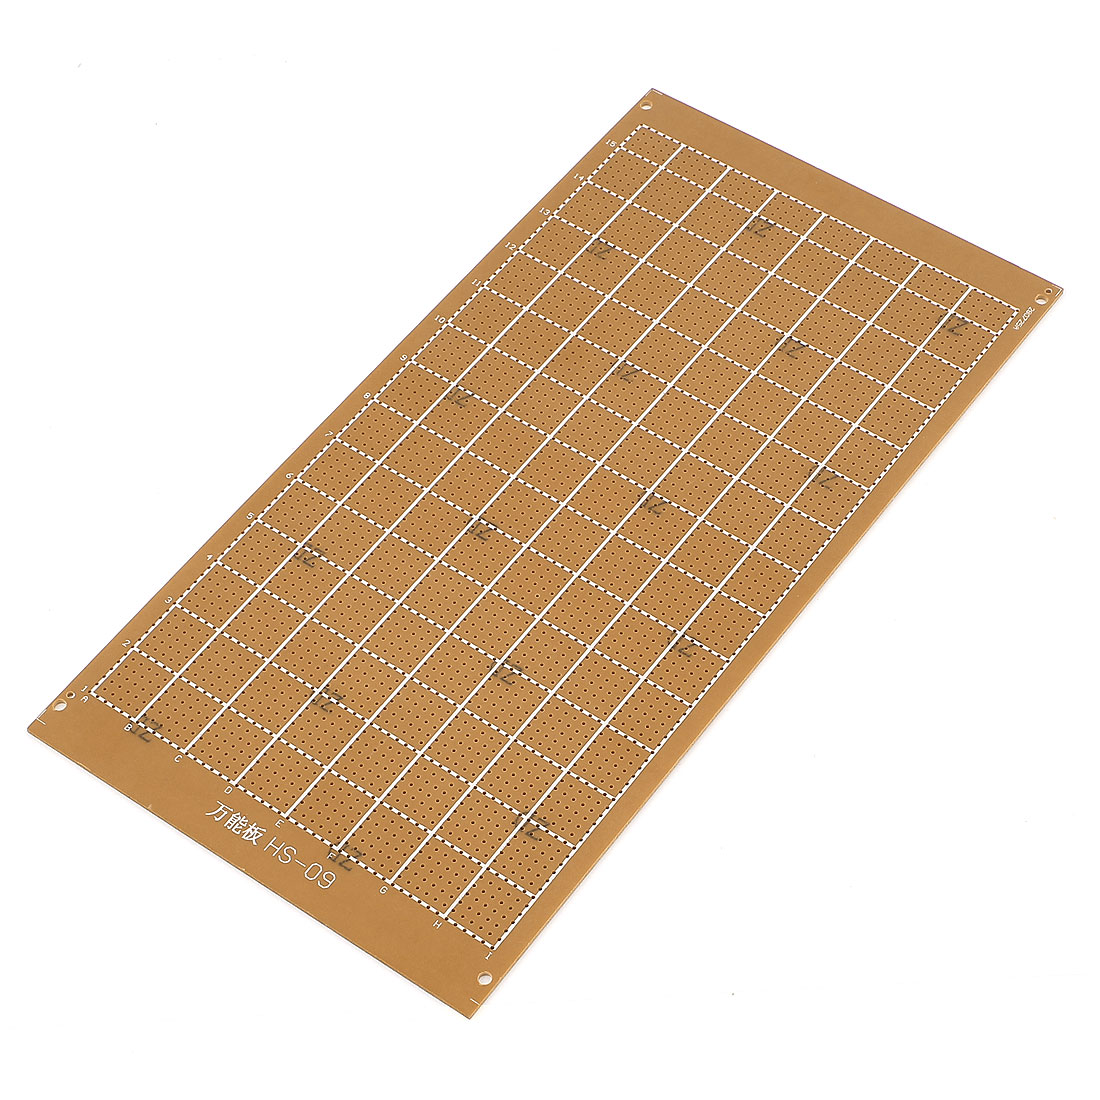 Single-sided PCB Printed Circuit Board Prototype Breadboard 25cm x 13cm